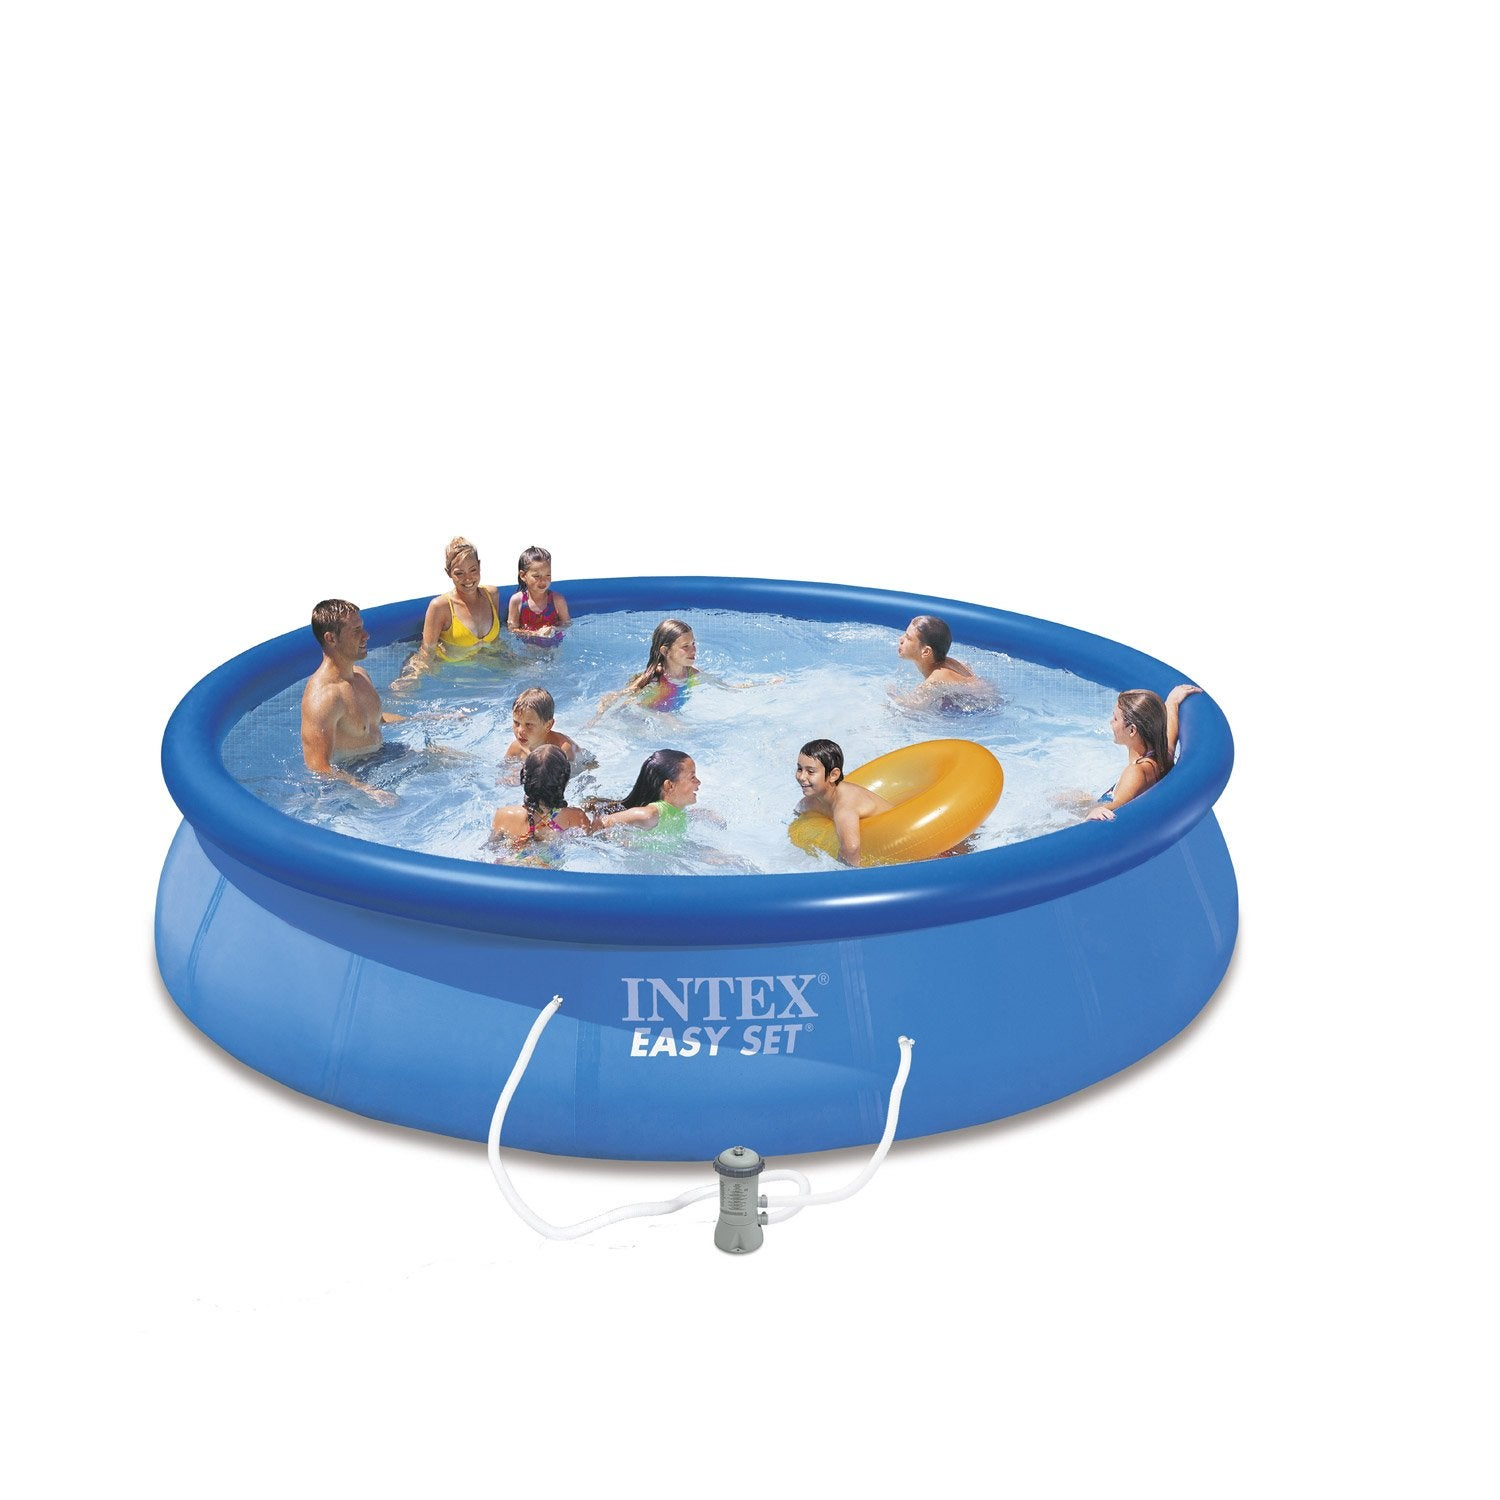 Piscine hors sol autoportante gonflable easy set intex - Chauffage piscine hors sol intex ...